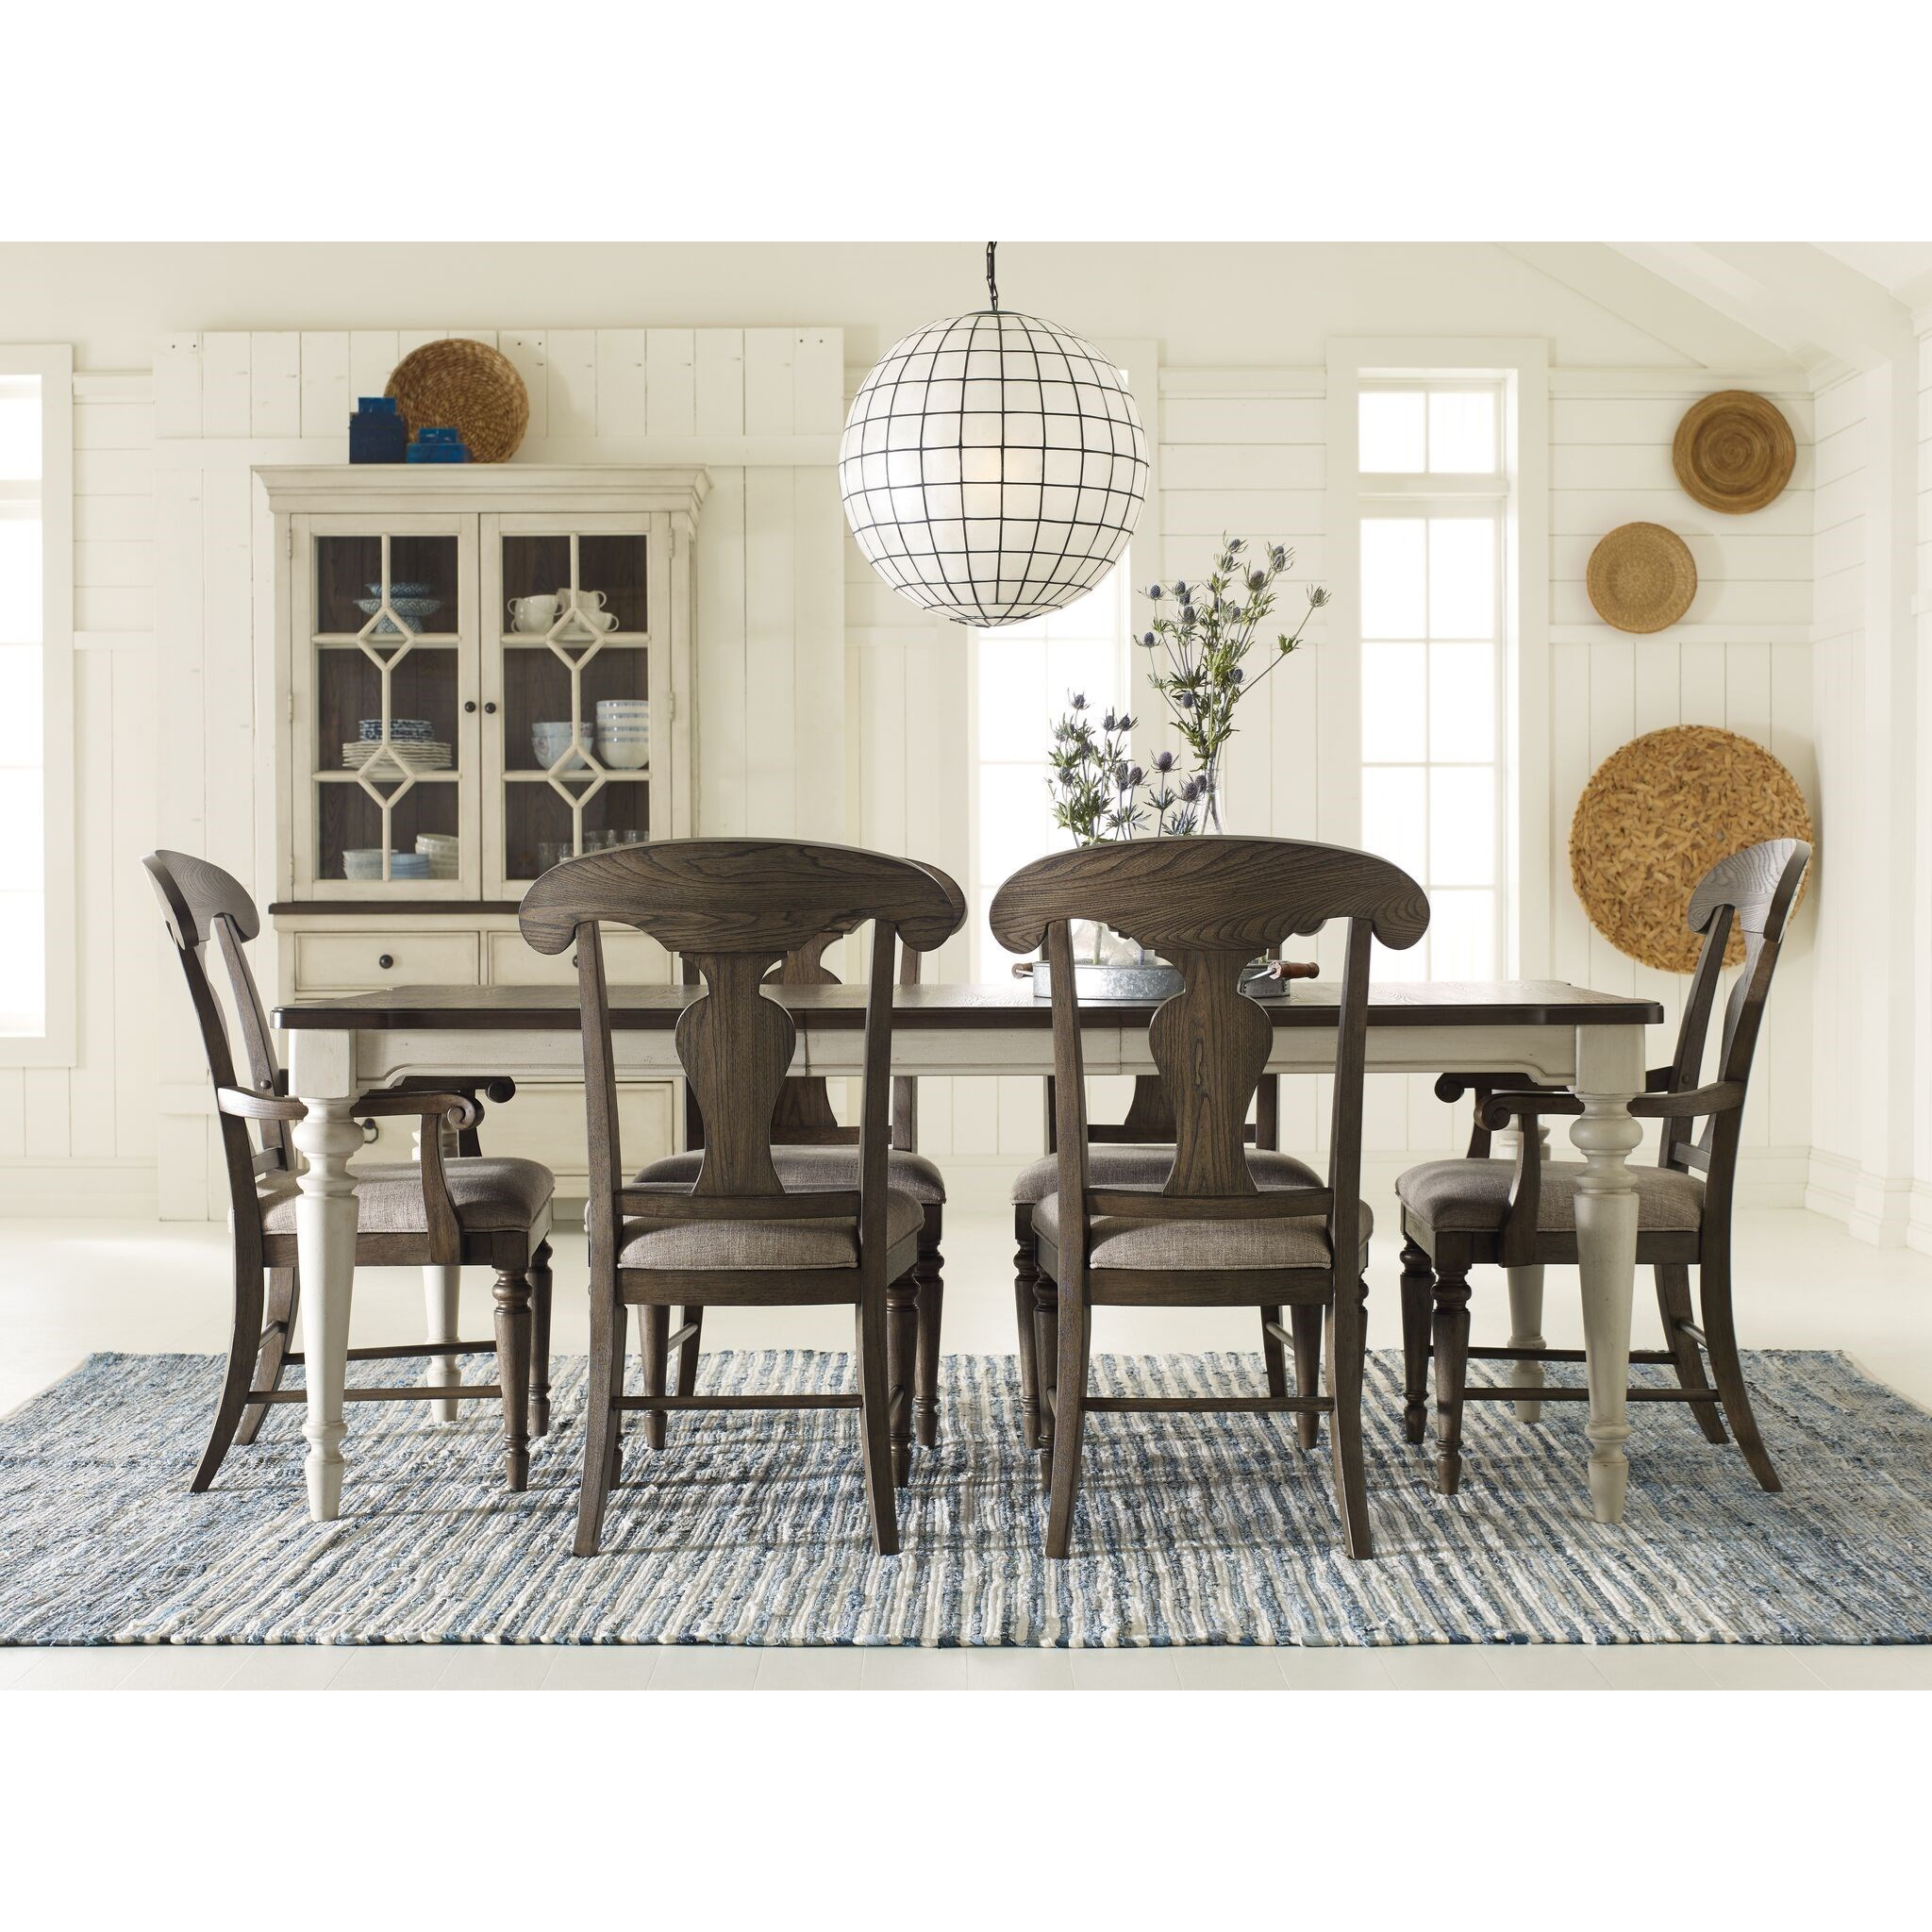 Brookhaven Formal Dining Room Group by Legacy Classic at Stoney Creek Furniture